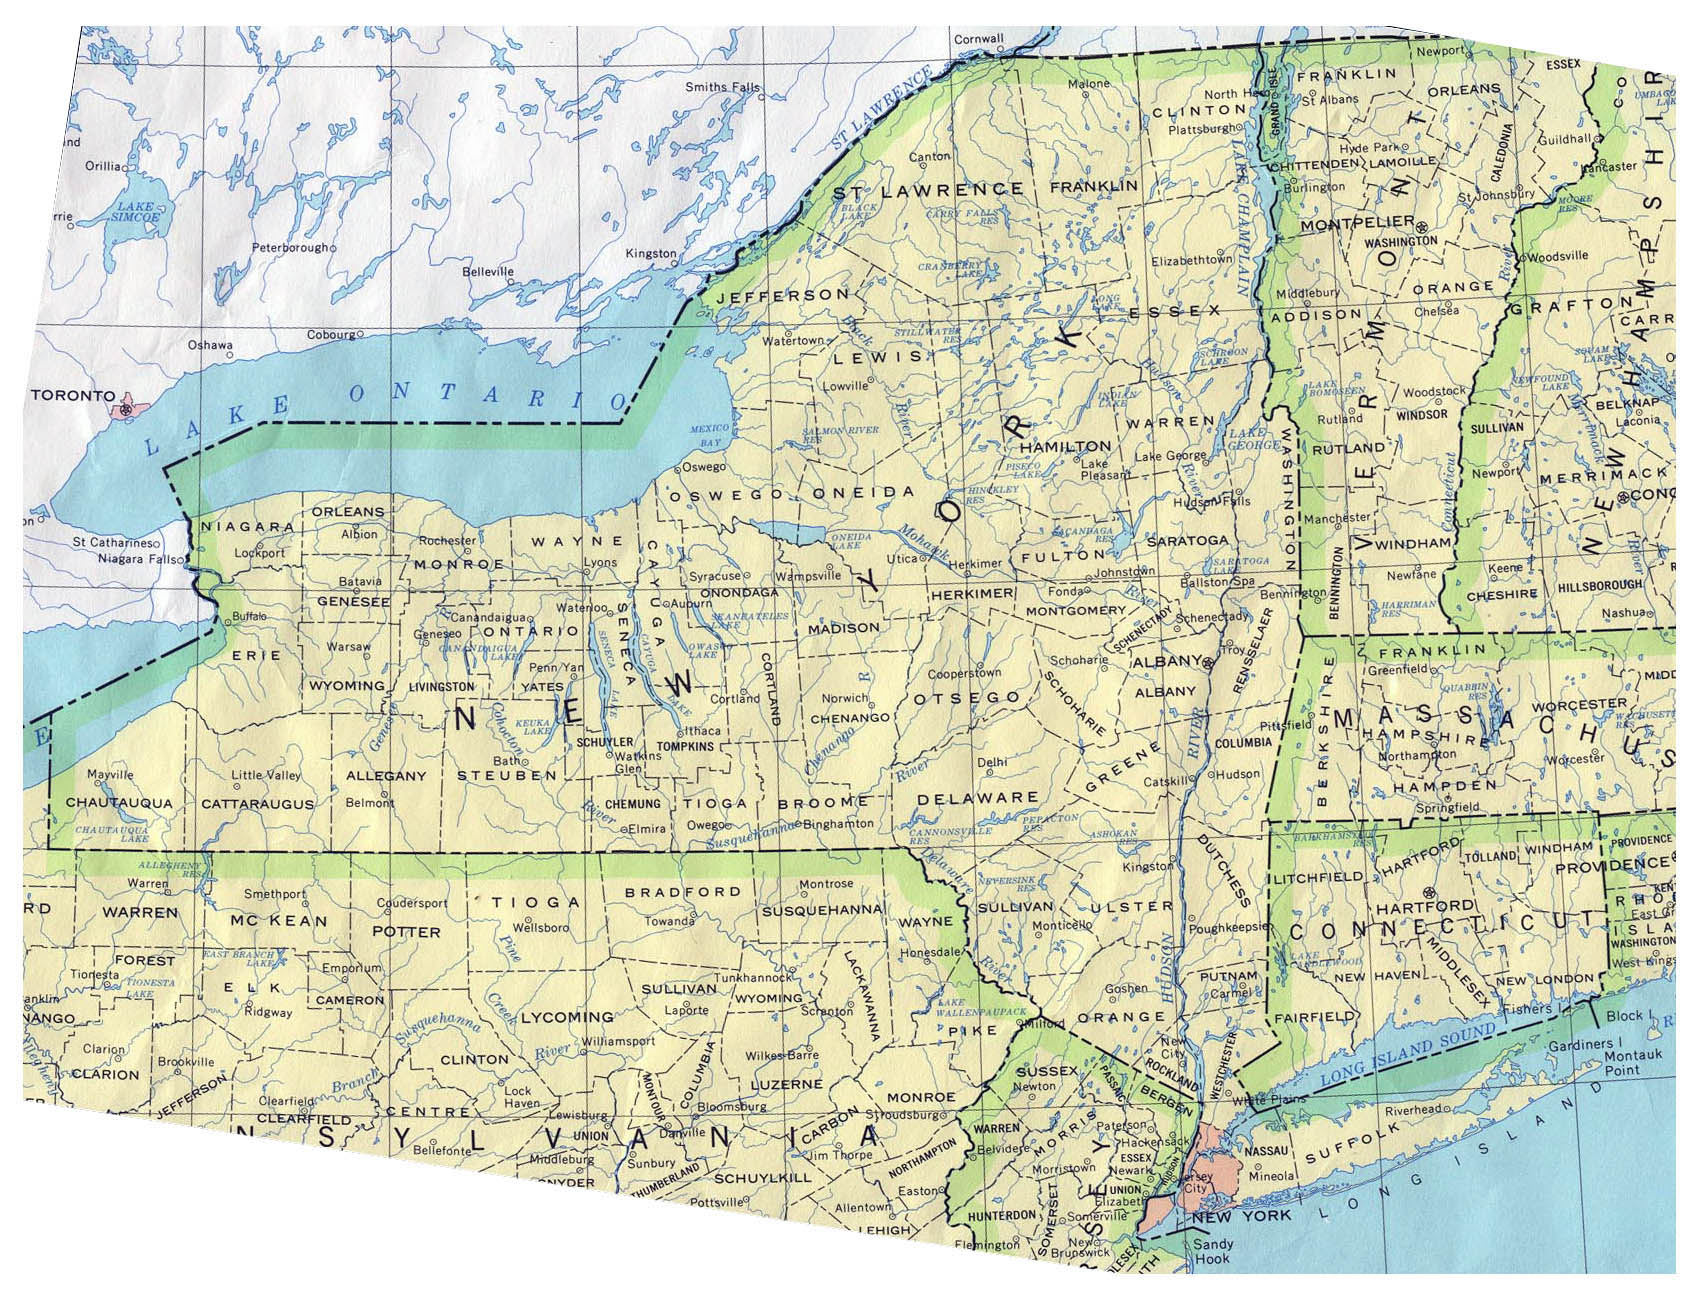 Detailed administrative map of New York State New York State